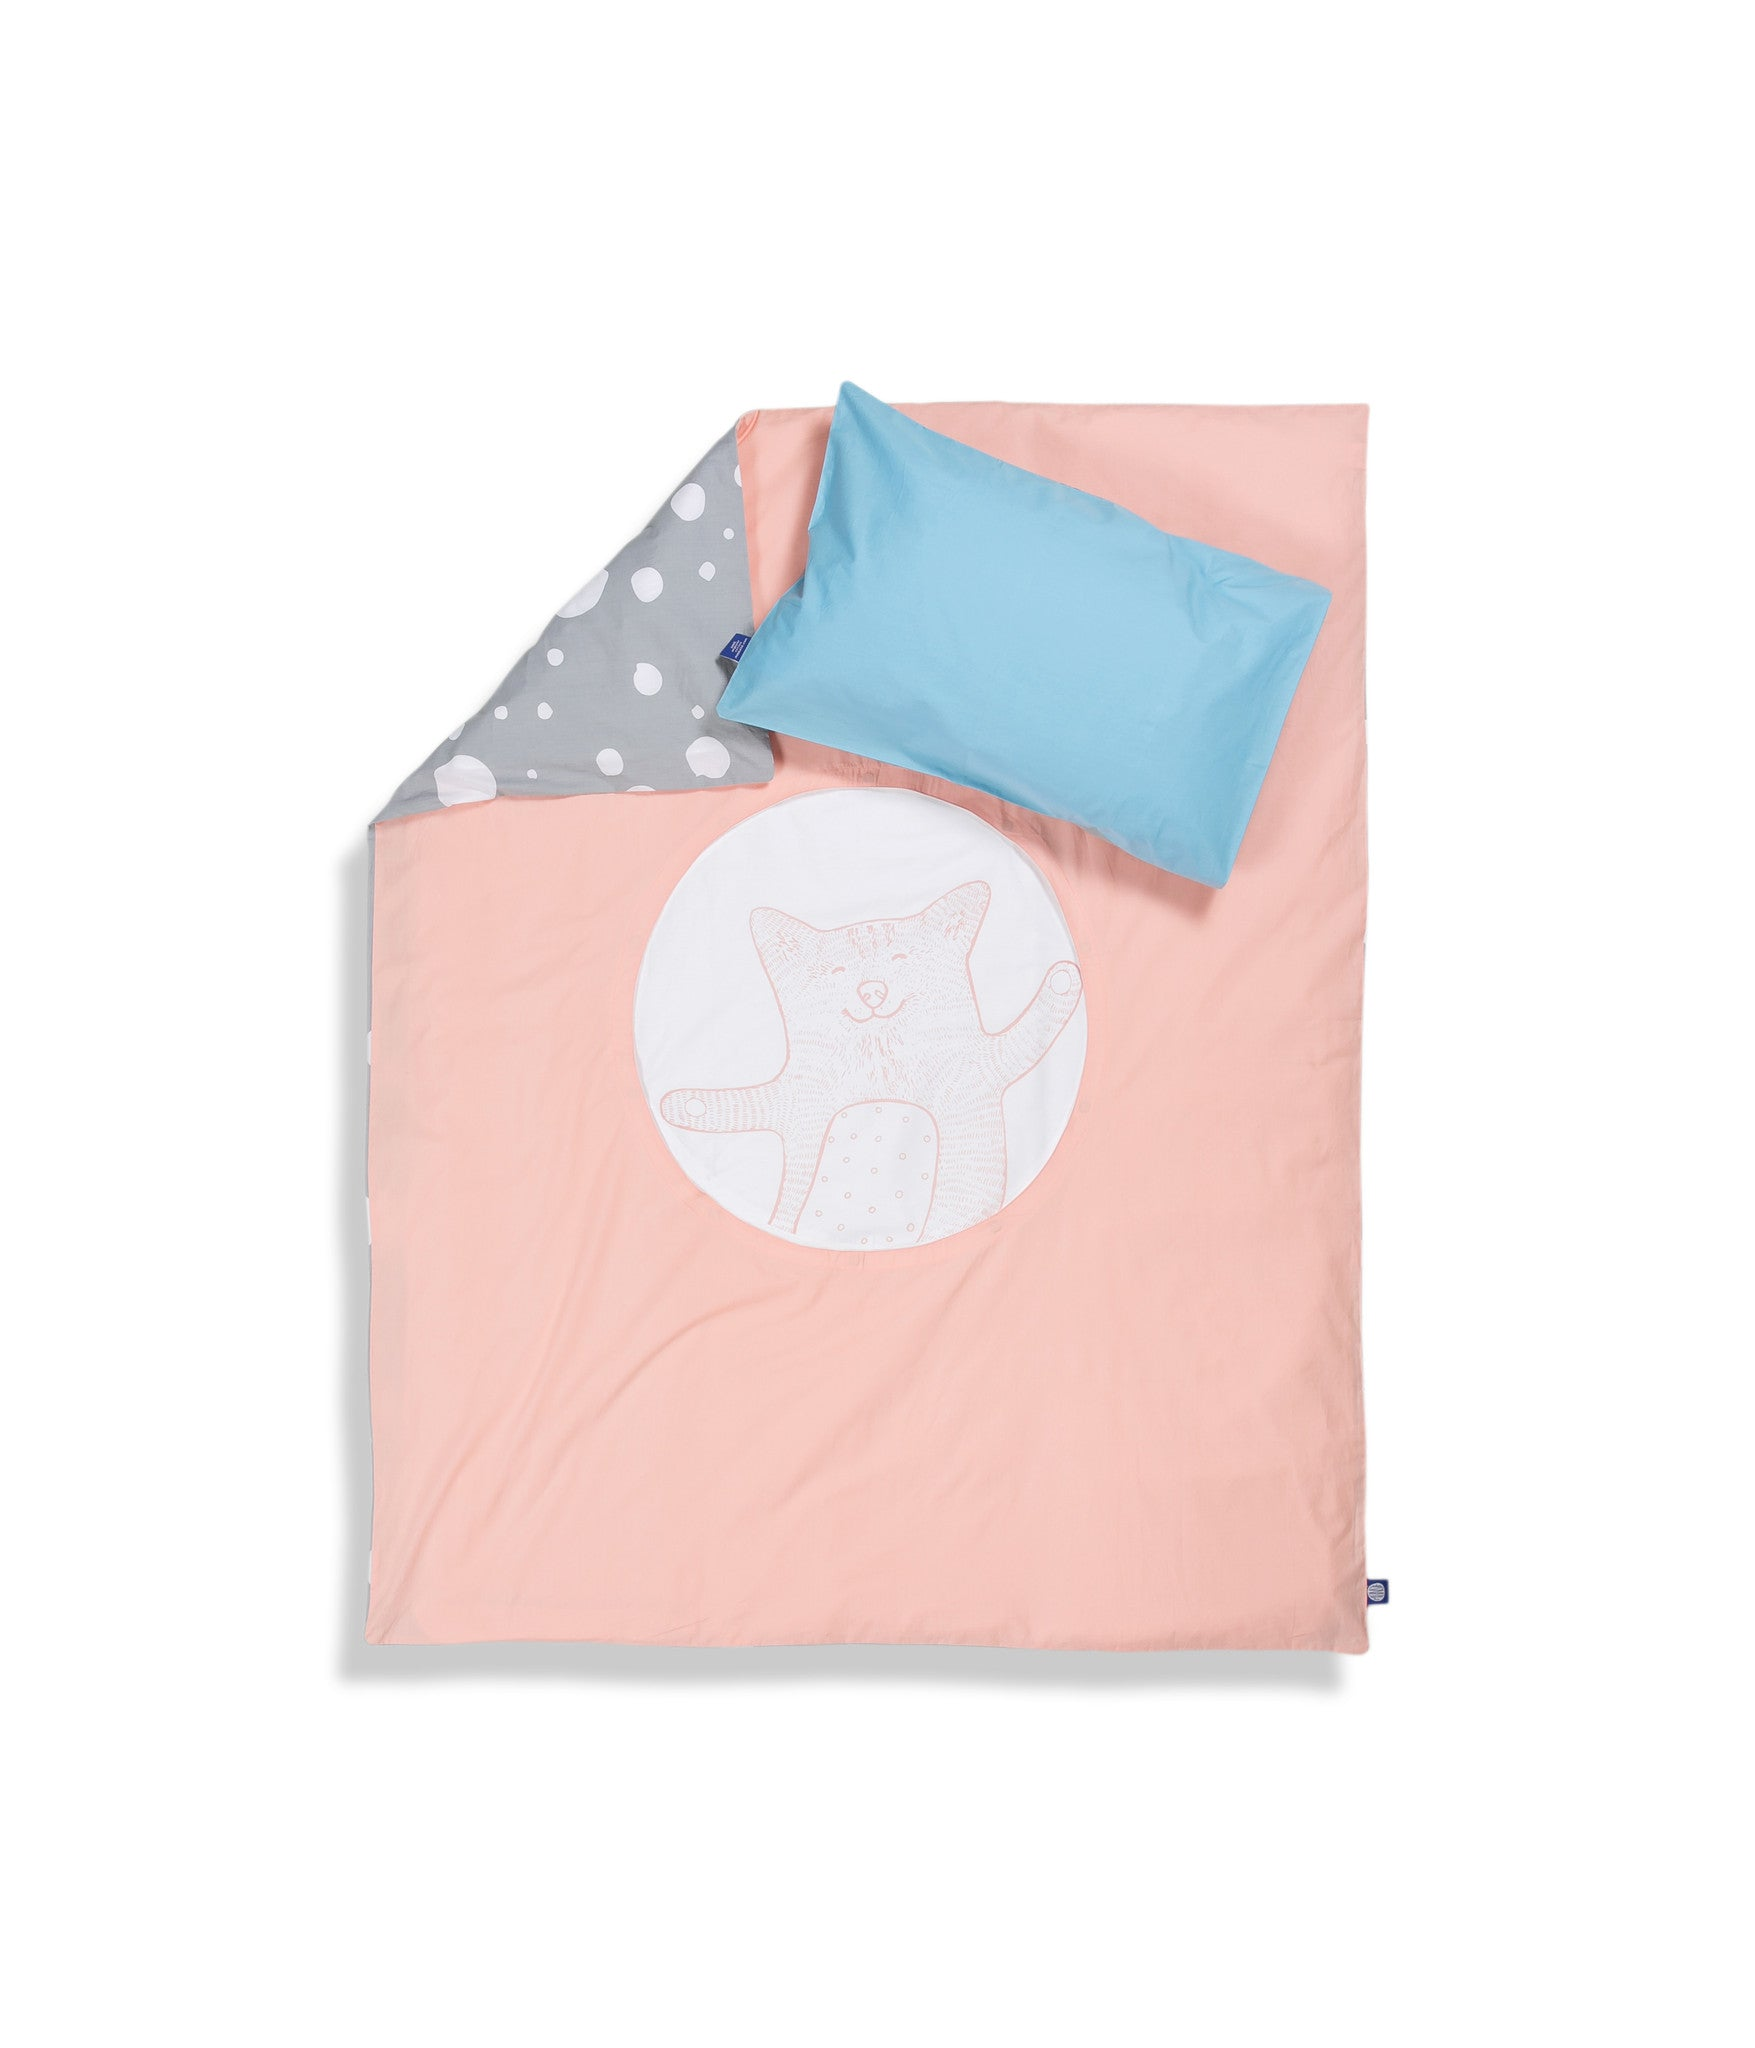 Organic cotton cot bed set. Baby bedding. Blue pillow case and pink duvet cover with cat. Dotted pattern bed linen. Customised bedding.